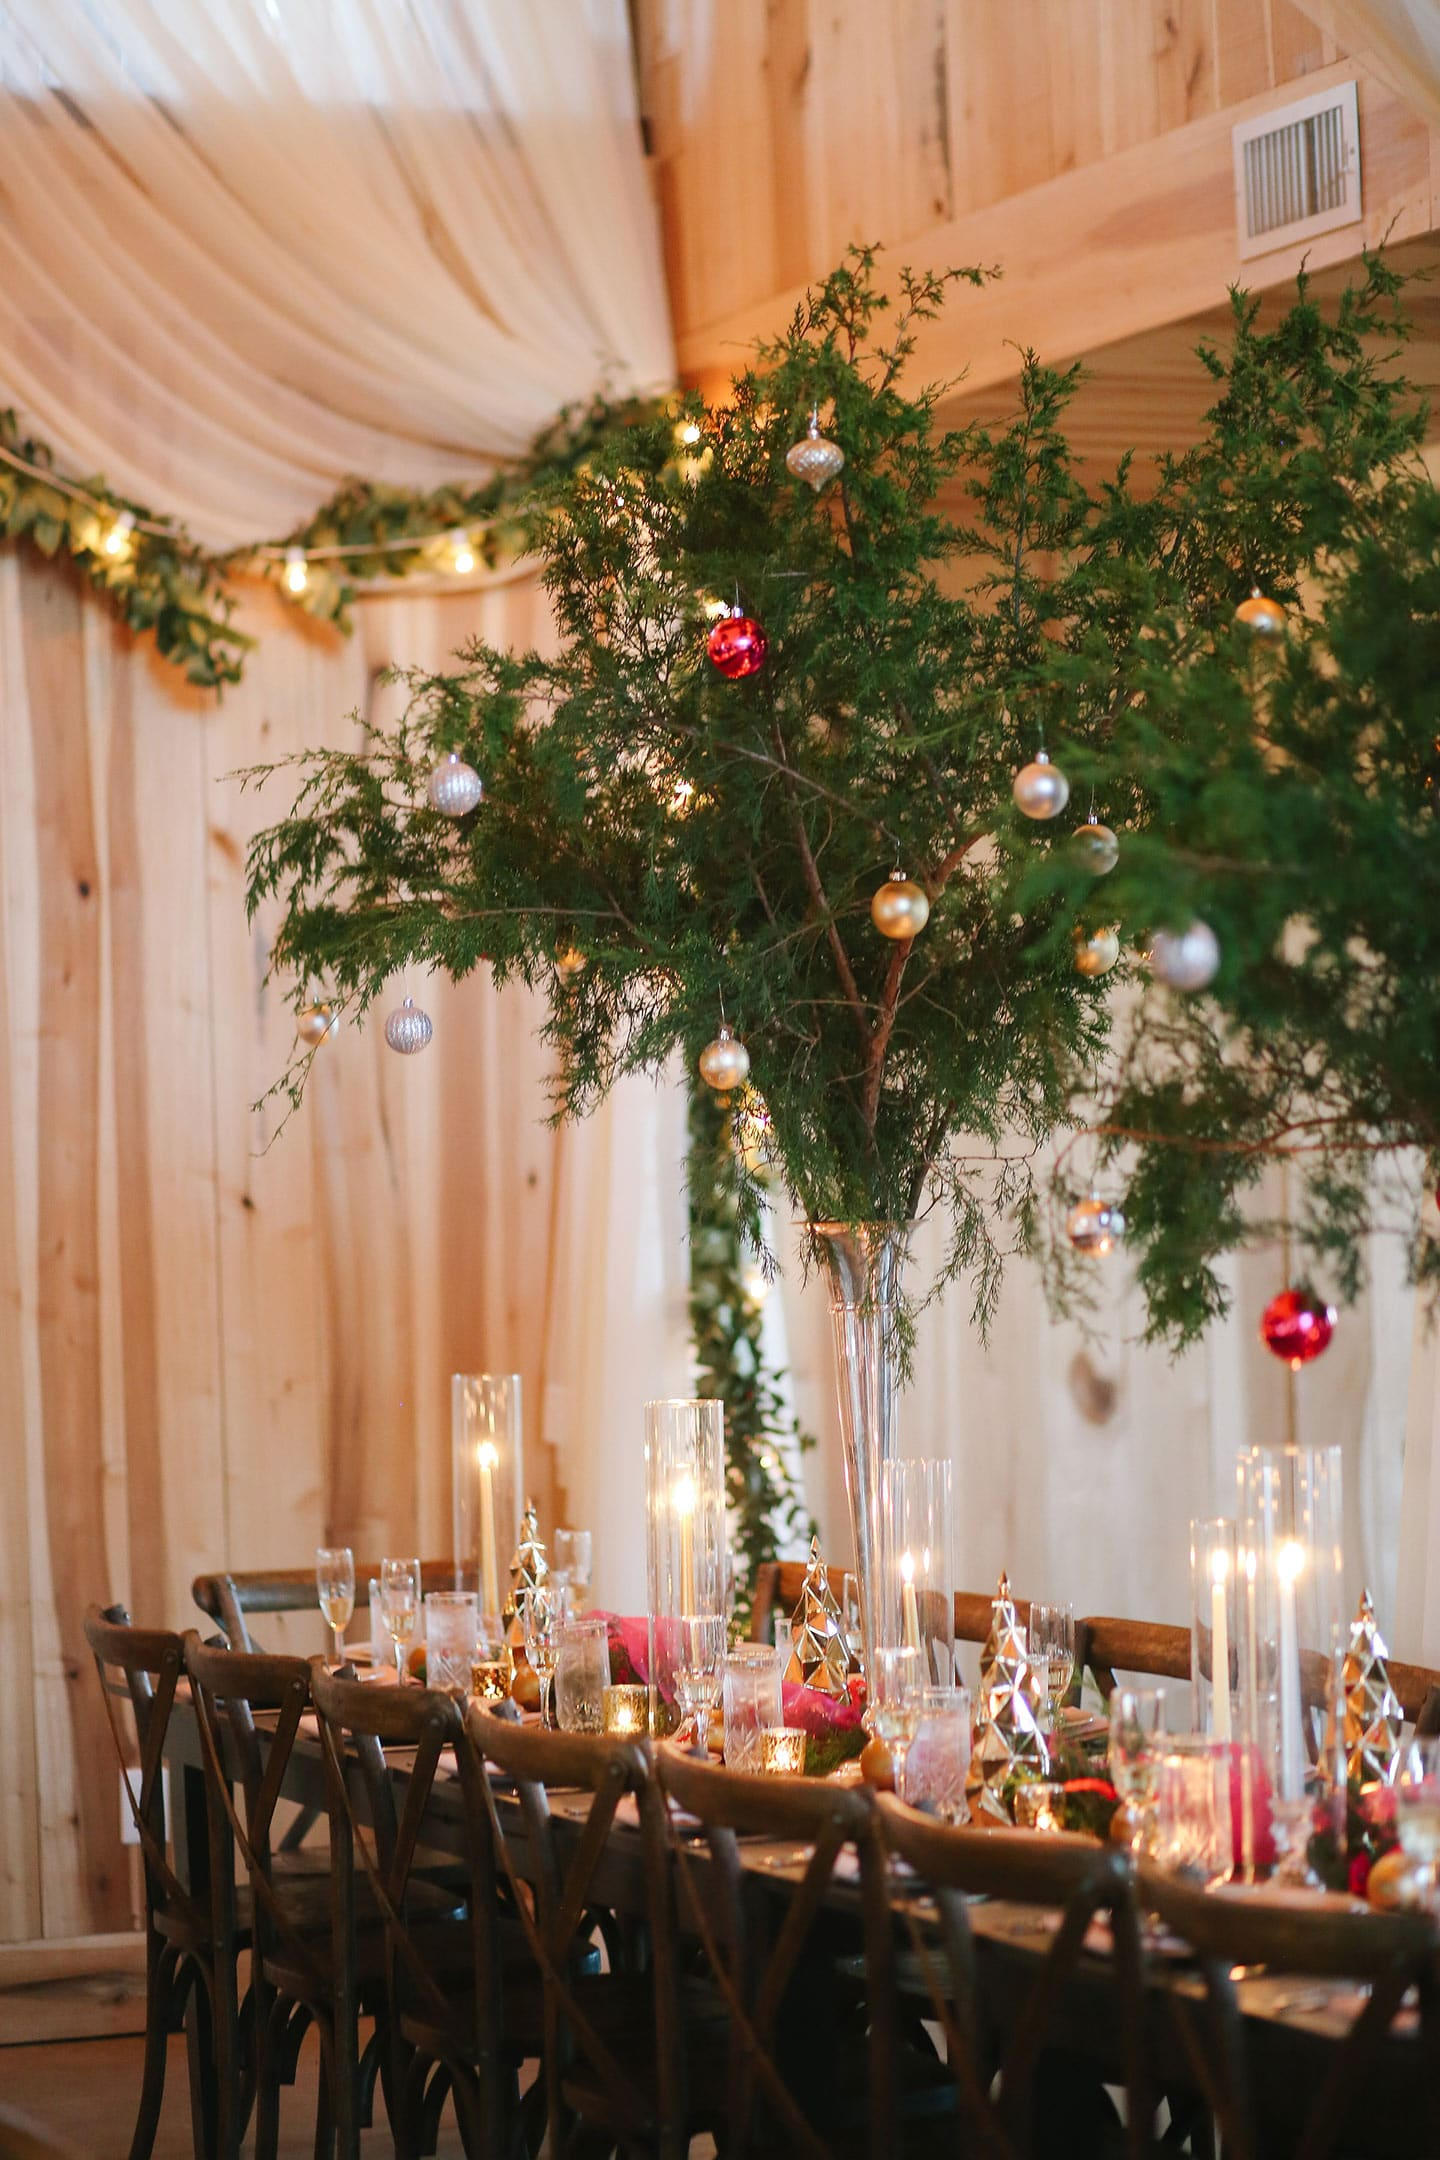 A dining table with a christmas tree